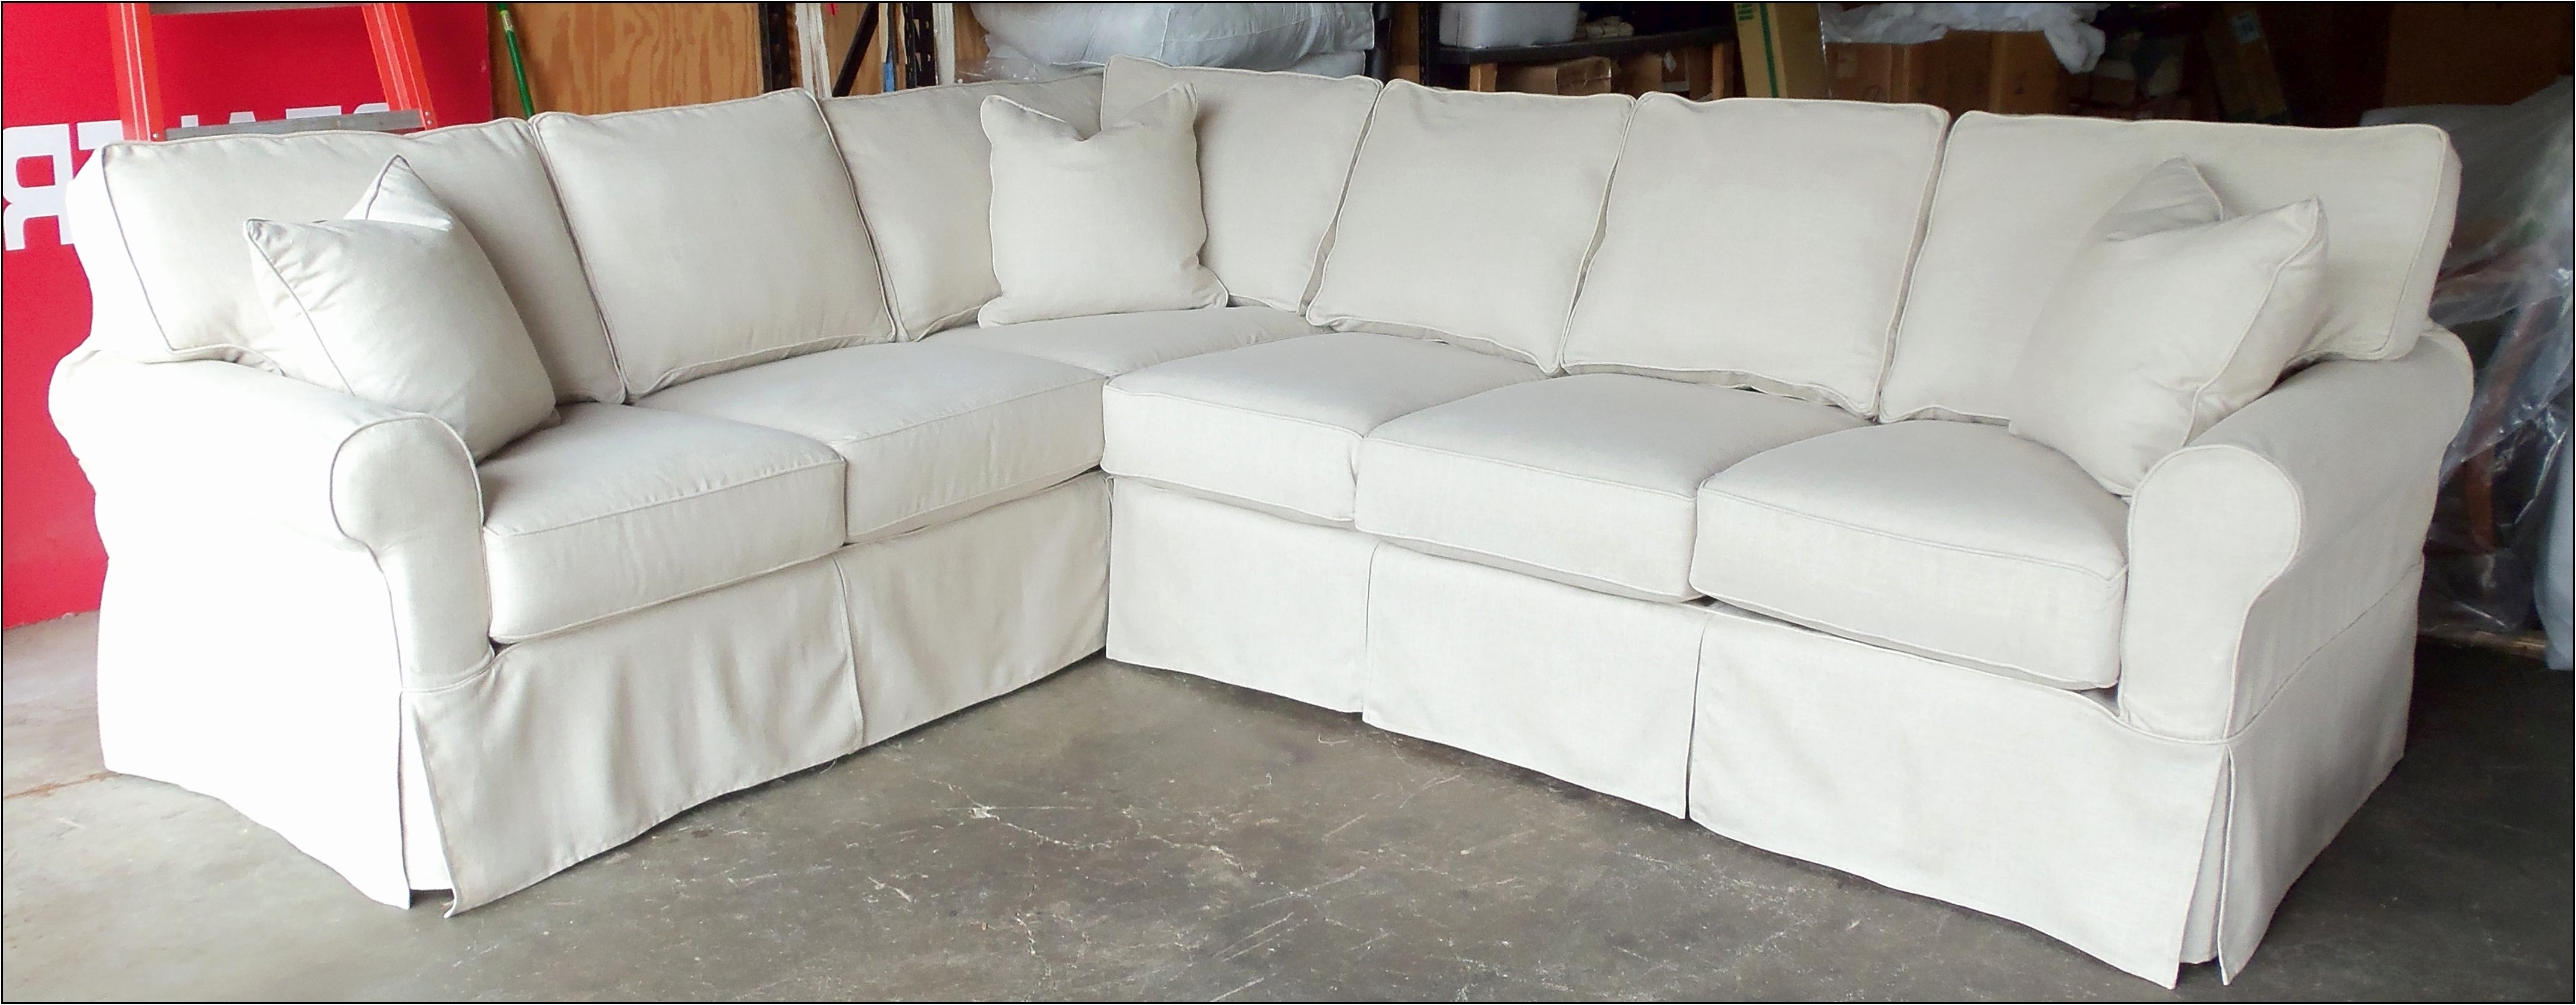 Current Sectional Sofas At Birmingham Al Regarding Best Slipcovers For Clayton Marcus Sofa 2018 – Couches And Sofas Ideas (View 3 of 15)